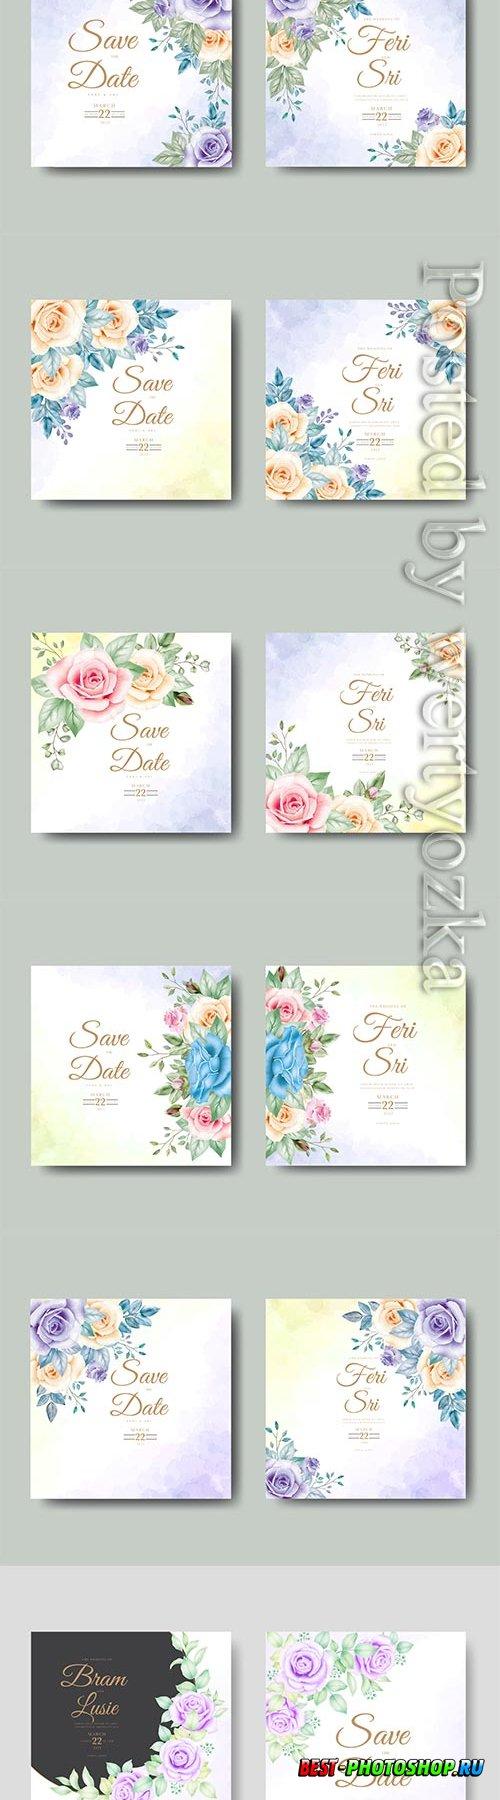 Beautiful vector wedding invitation card with floral watercolor